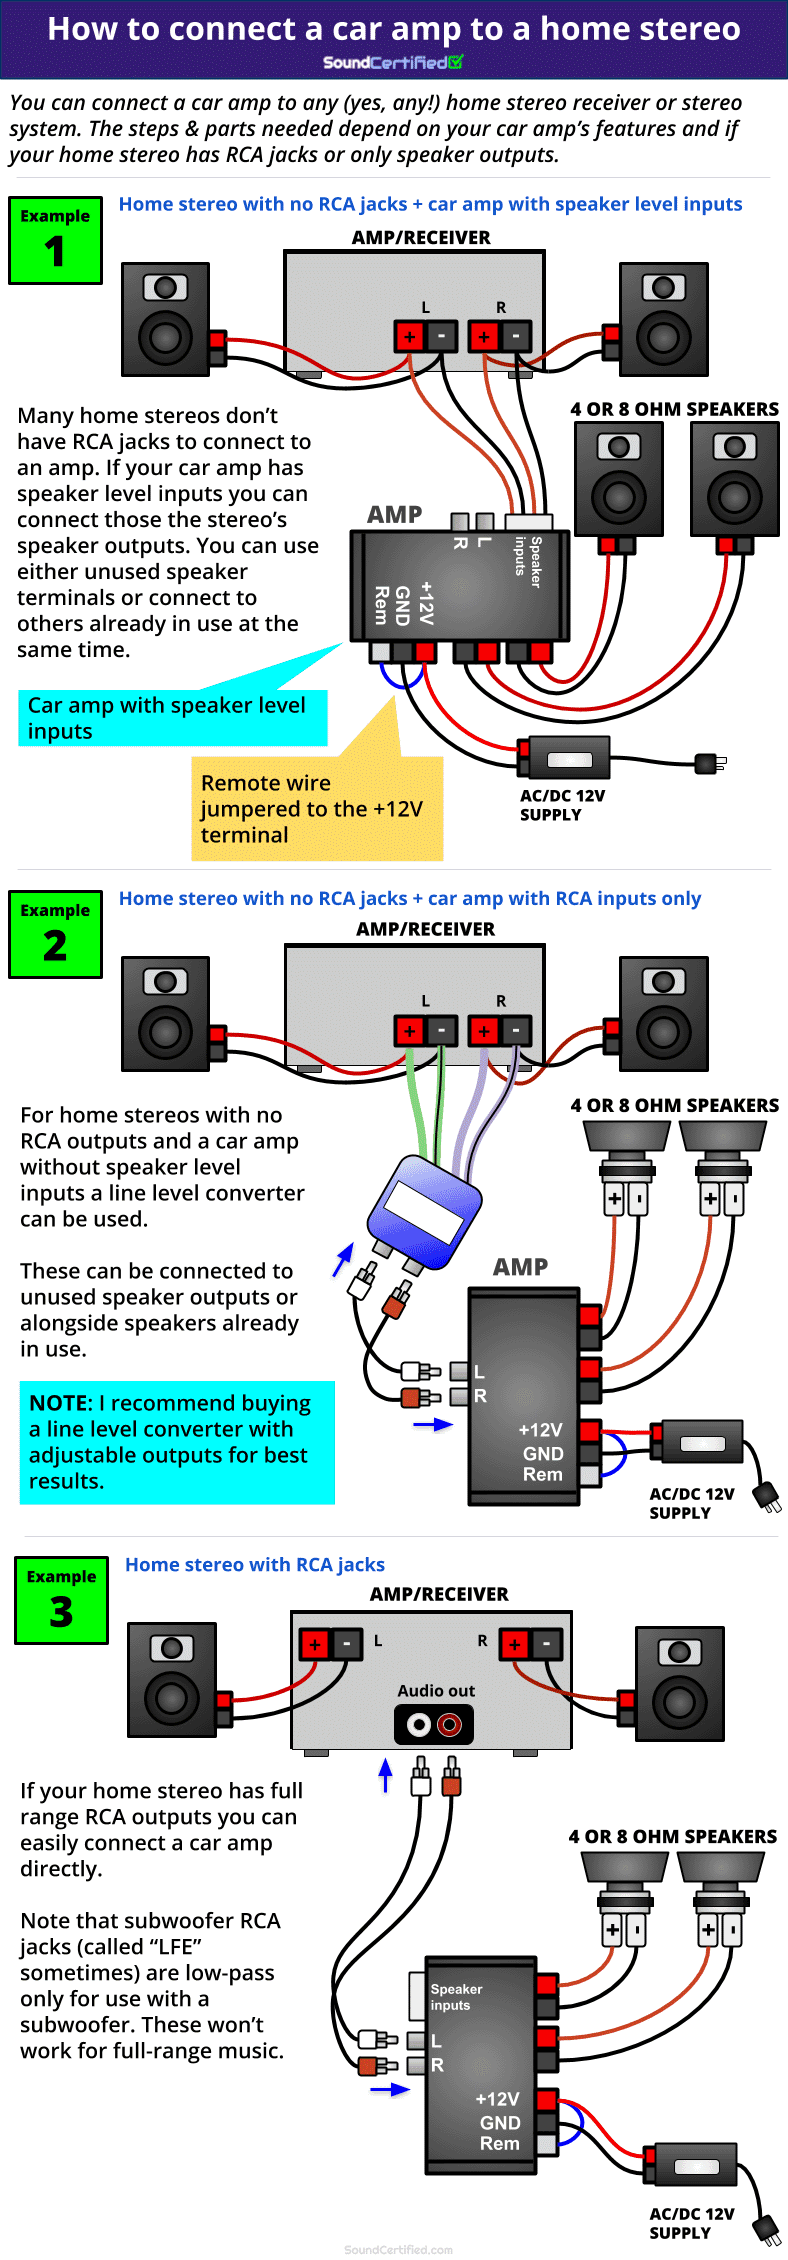 Power Supply For Car Amp In House : power, supply, house, Connect, Stereo, (With, Diagrams)